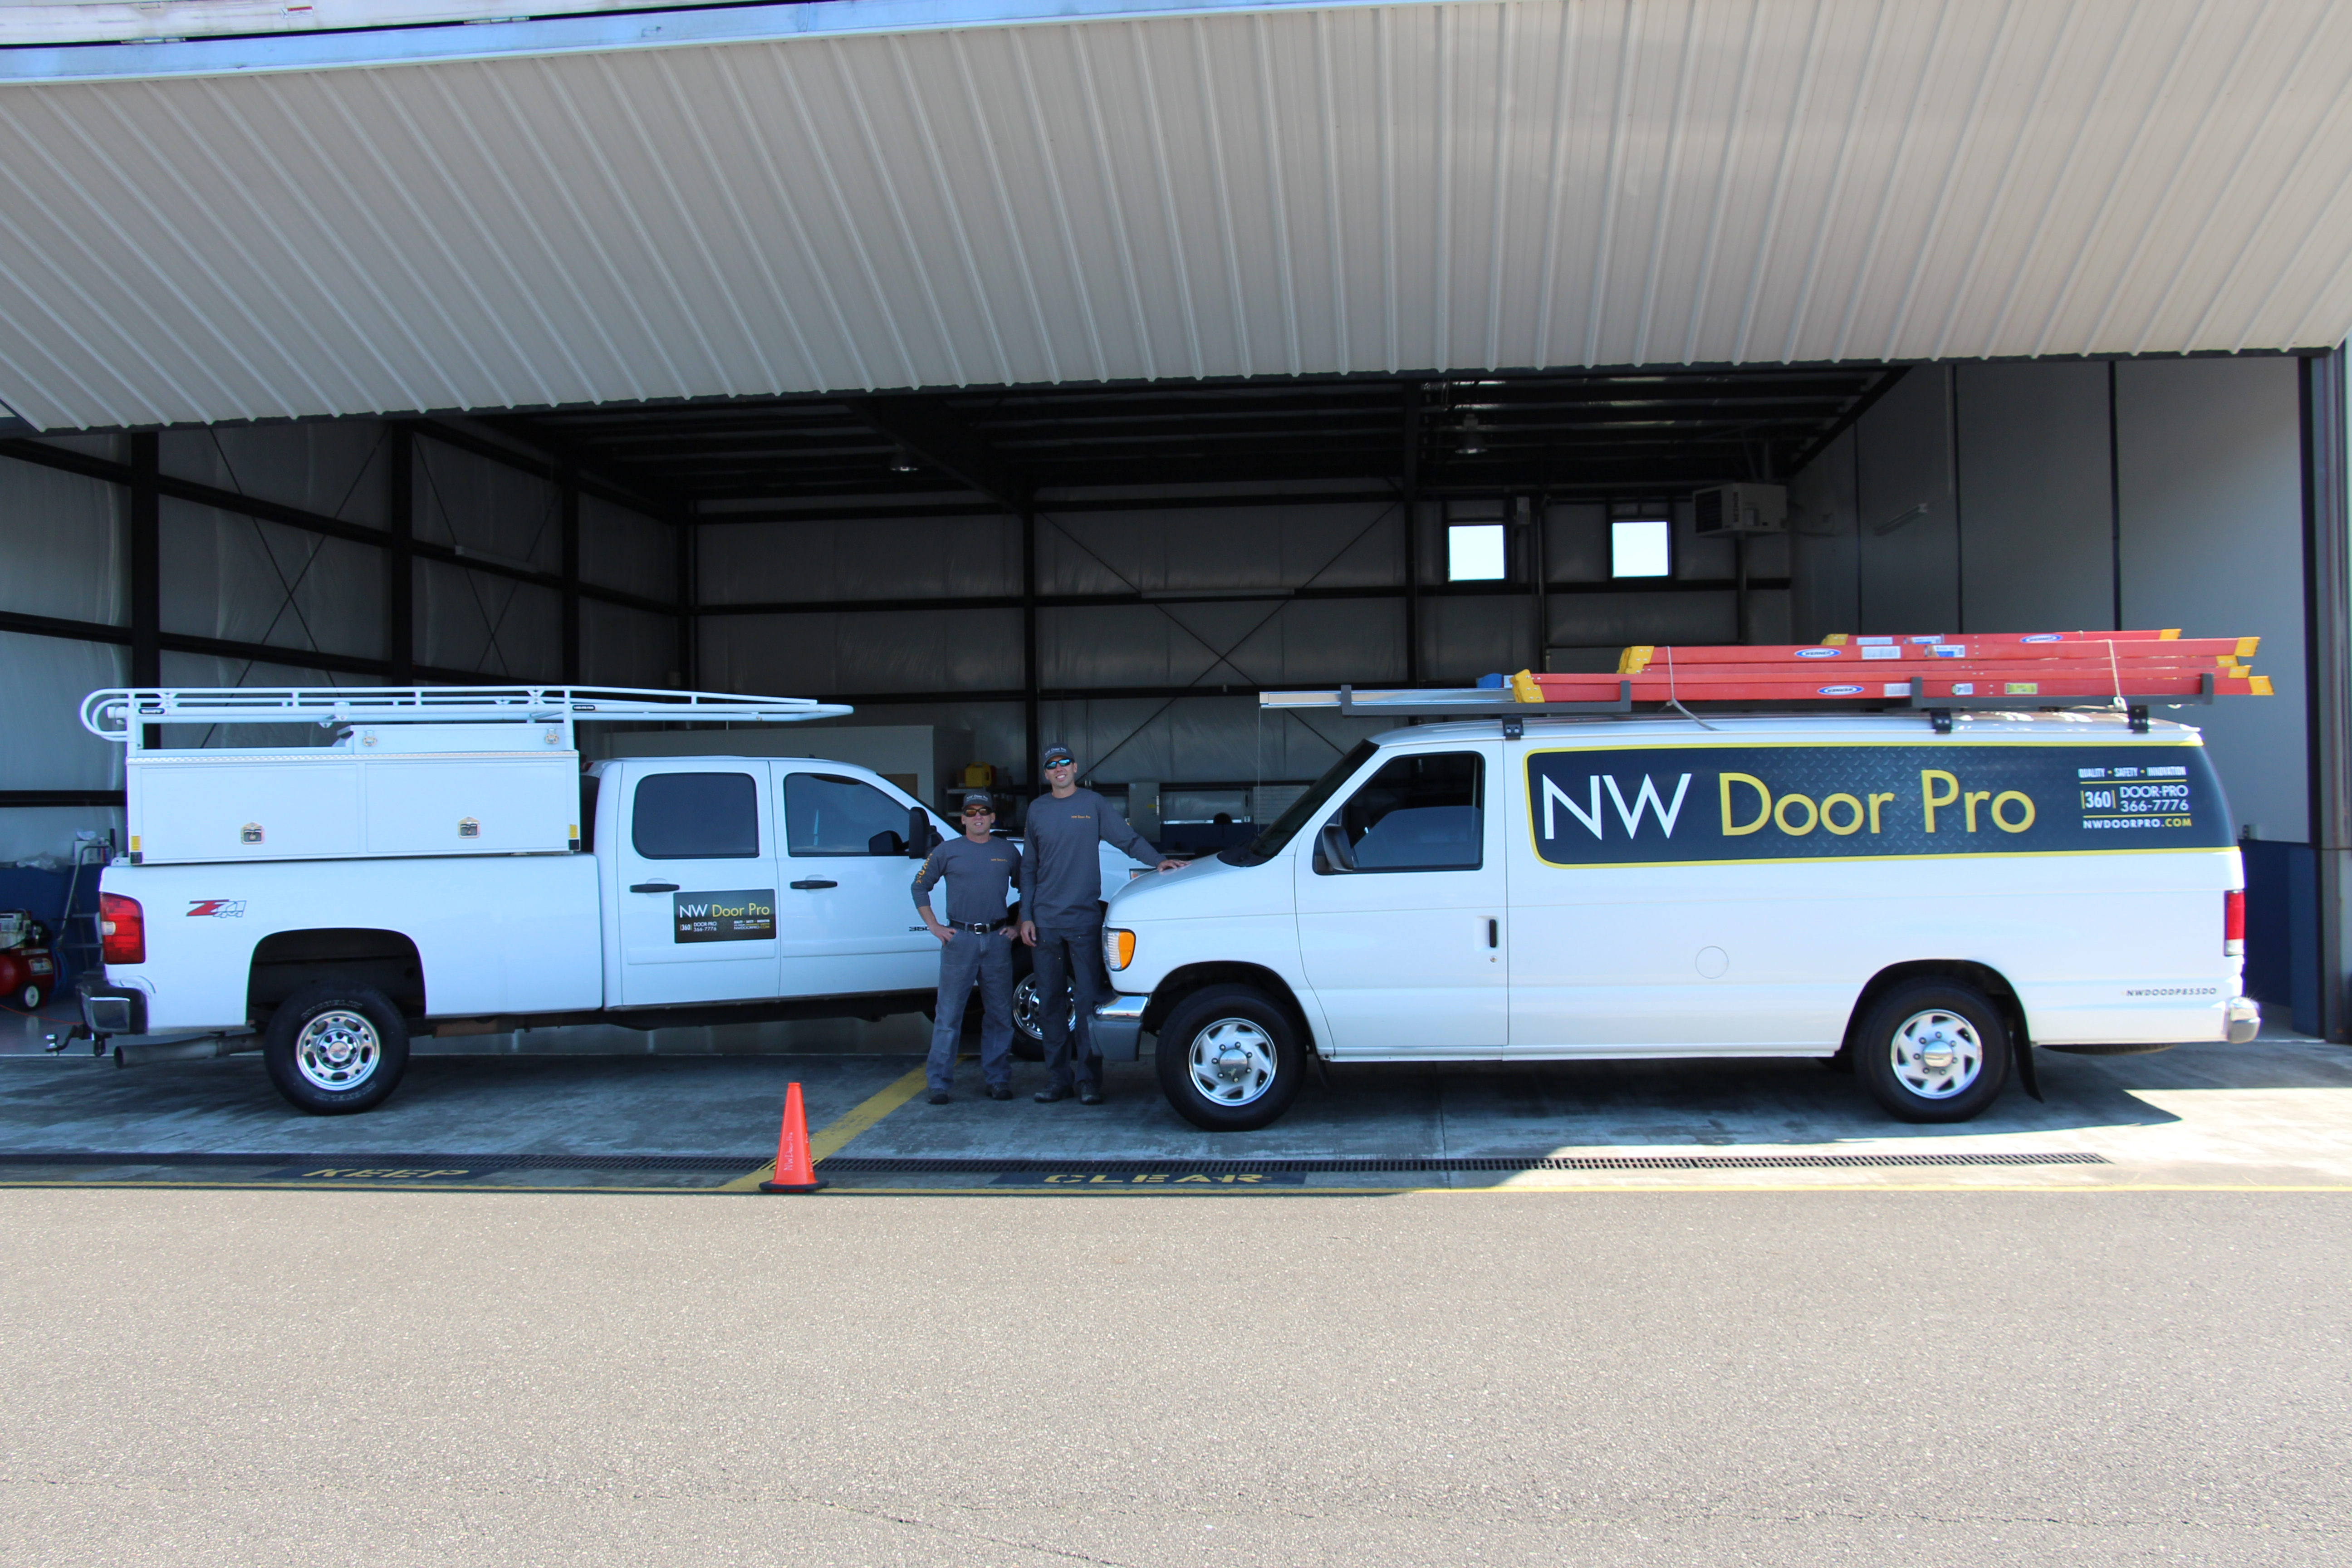 Commercial Door Specialists in Bellingham WA & About NW Door Pro